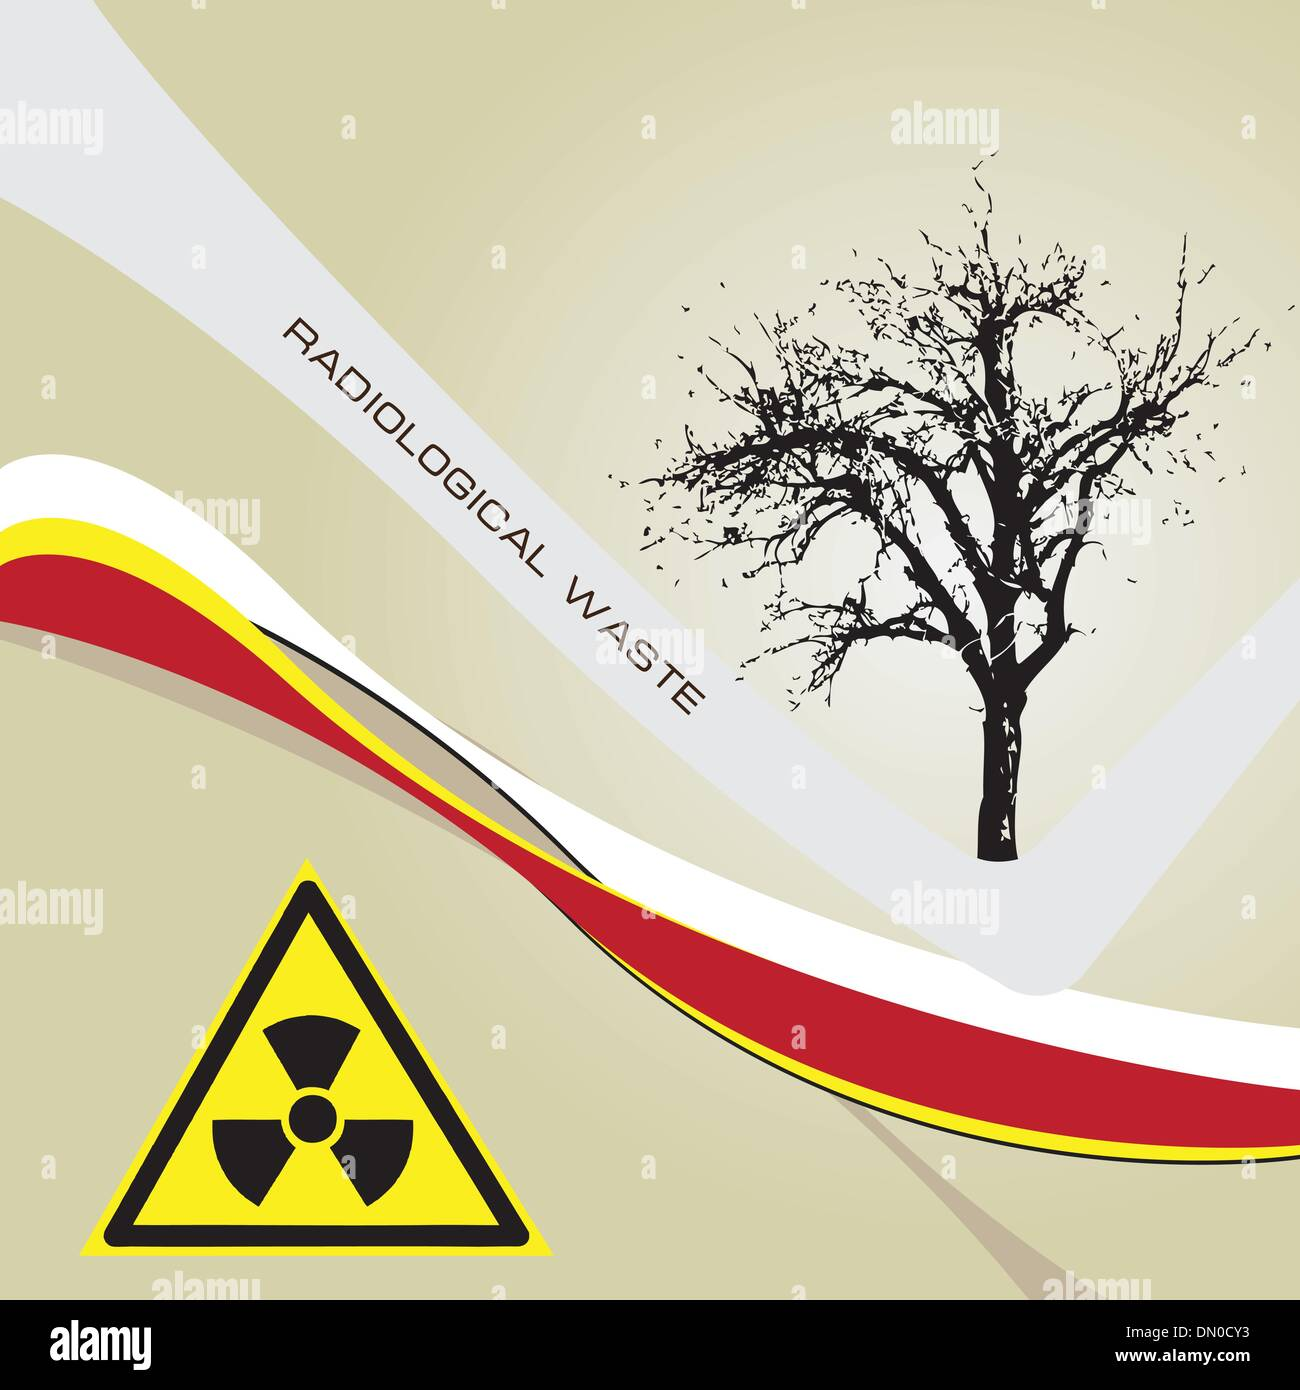 Background radiation waste - Stock Vector